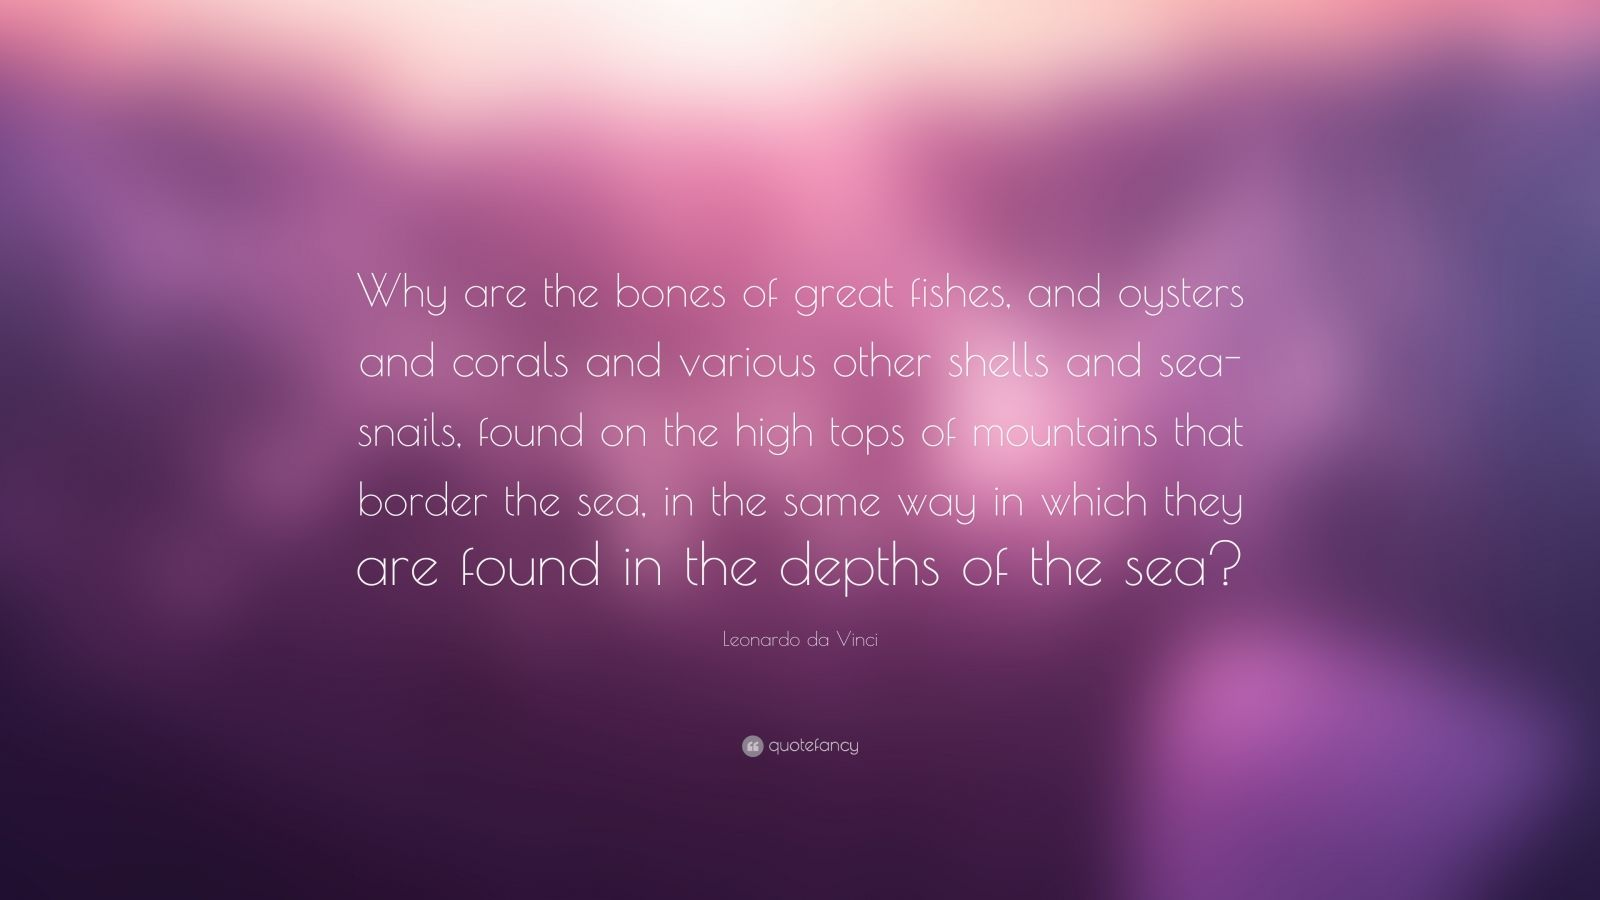 "Leonardo da Vinci Quote: ""Why are the bones of great fishes, and oysters and corals and various other shells and sea-snails, found on the high tops of mountains that border the sea, in the same way in which they are found in the depths of the sea?"""